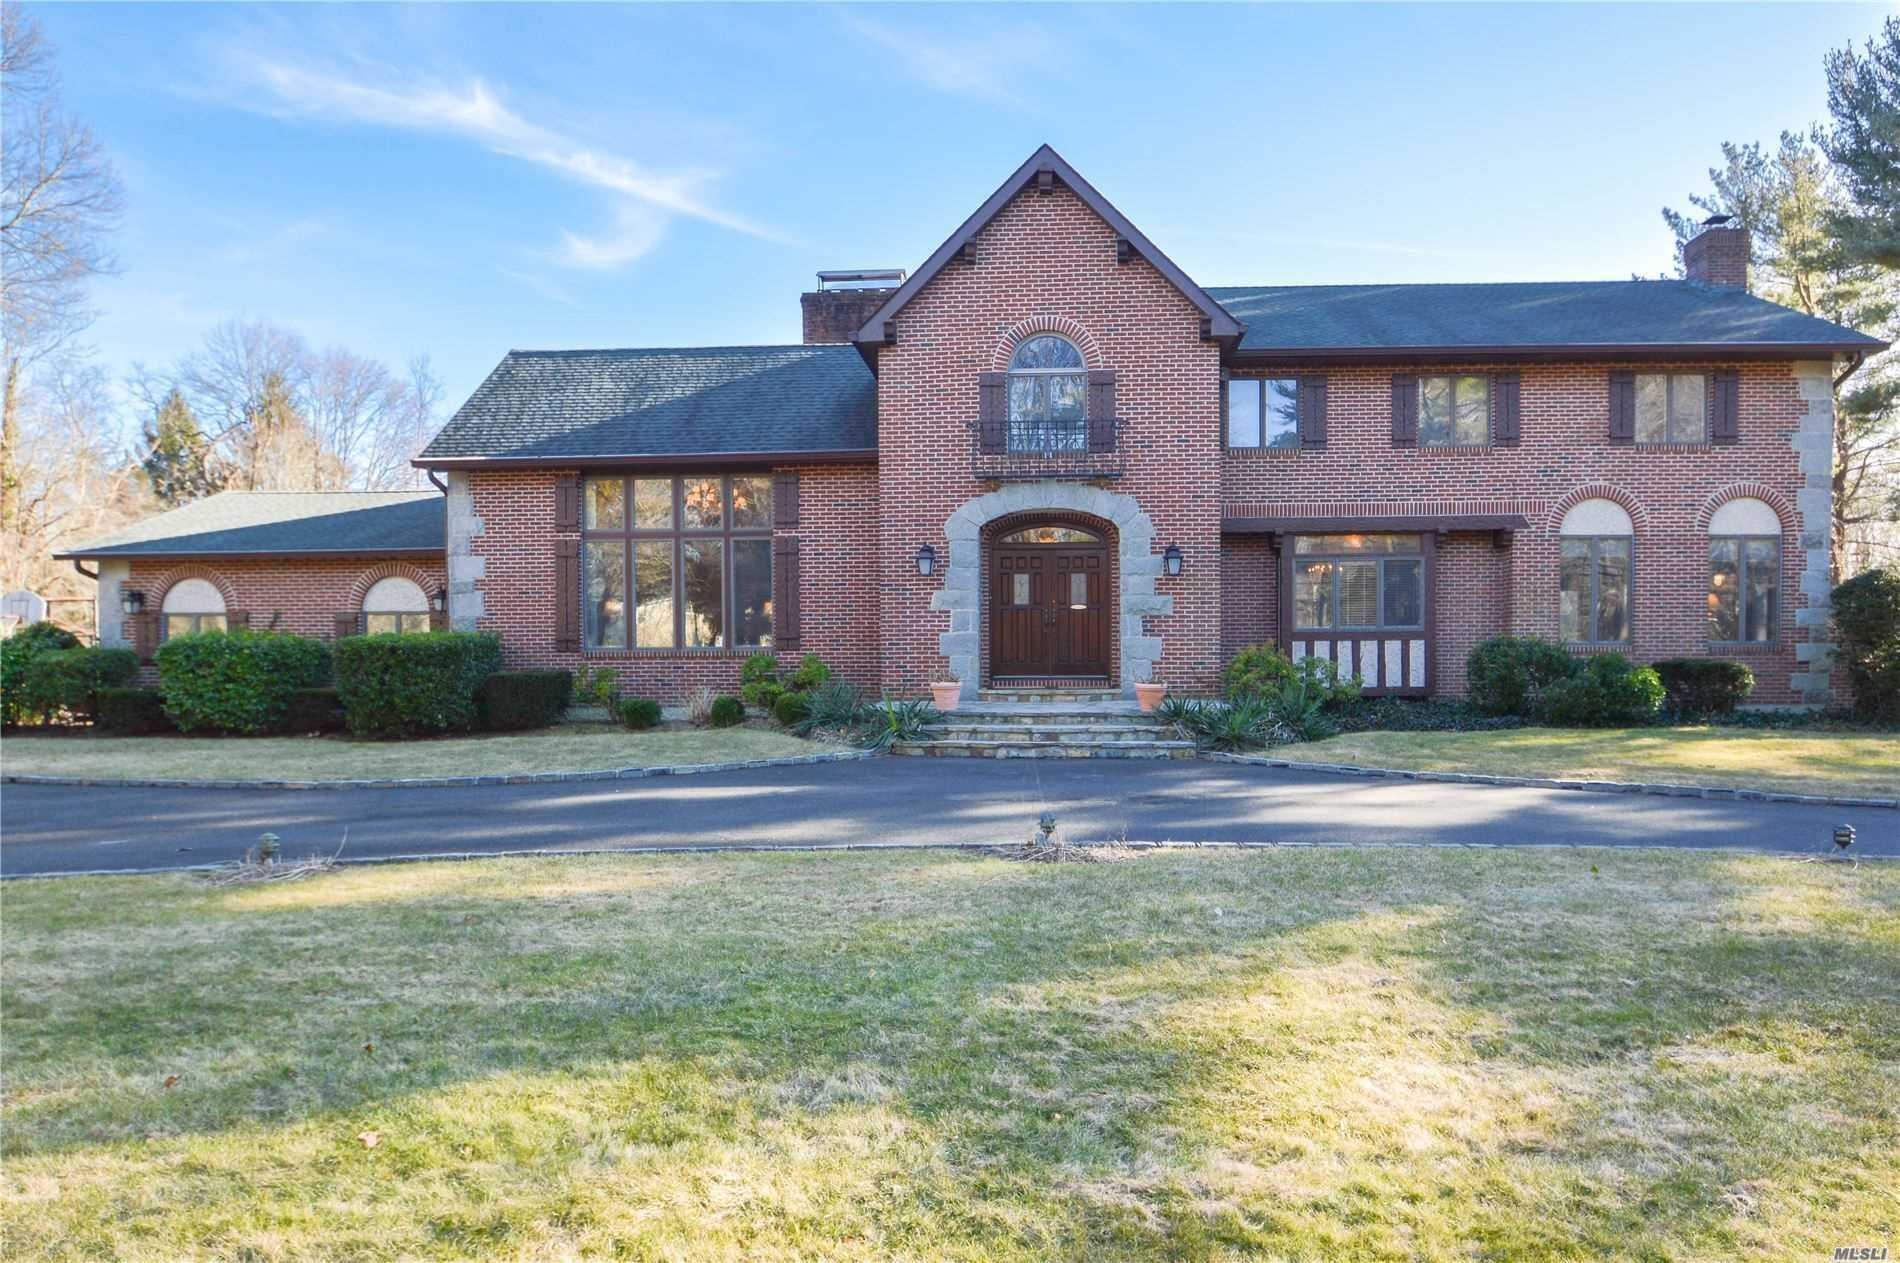 First Time On The Market! Builder's Own! Spectacular 5 Bdrm/3.5Bth Chc Set On Pvt & Tranquil 2 A W/Igp, Tennis Ct, Lovely Gazebo & Barn. Elegantly Appointed Rms: Flr W/Floor To Ceiling Custom Fpl, Spacious Fdr W/Antique Chrystal Chandelier, Great Rm W/Hand Picked Stone Fpl & Custom Screen, Huge Eik/Fpl & 12' Bay Window O'looking The Serene Yard. Huge Bsmt Part Finished W/Fpl & Fbth. Locust Valley Schools. Easy Commute To Highways & Miracle Mile Shopping.